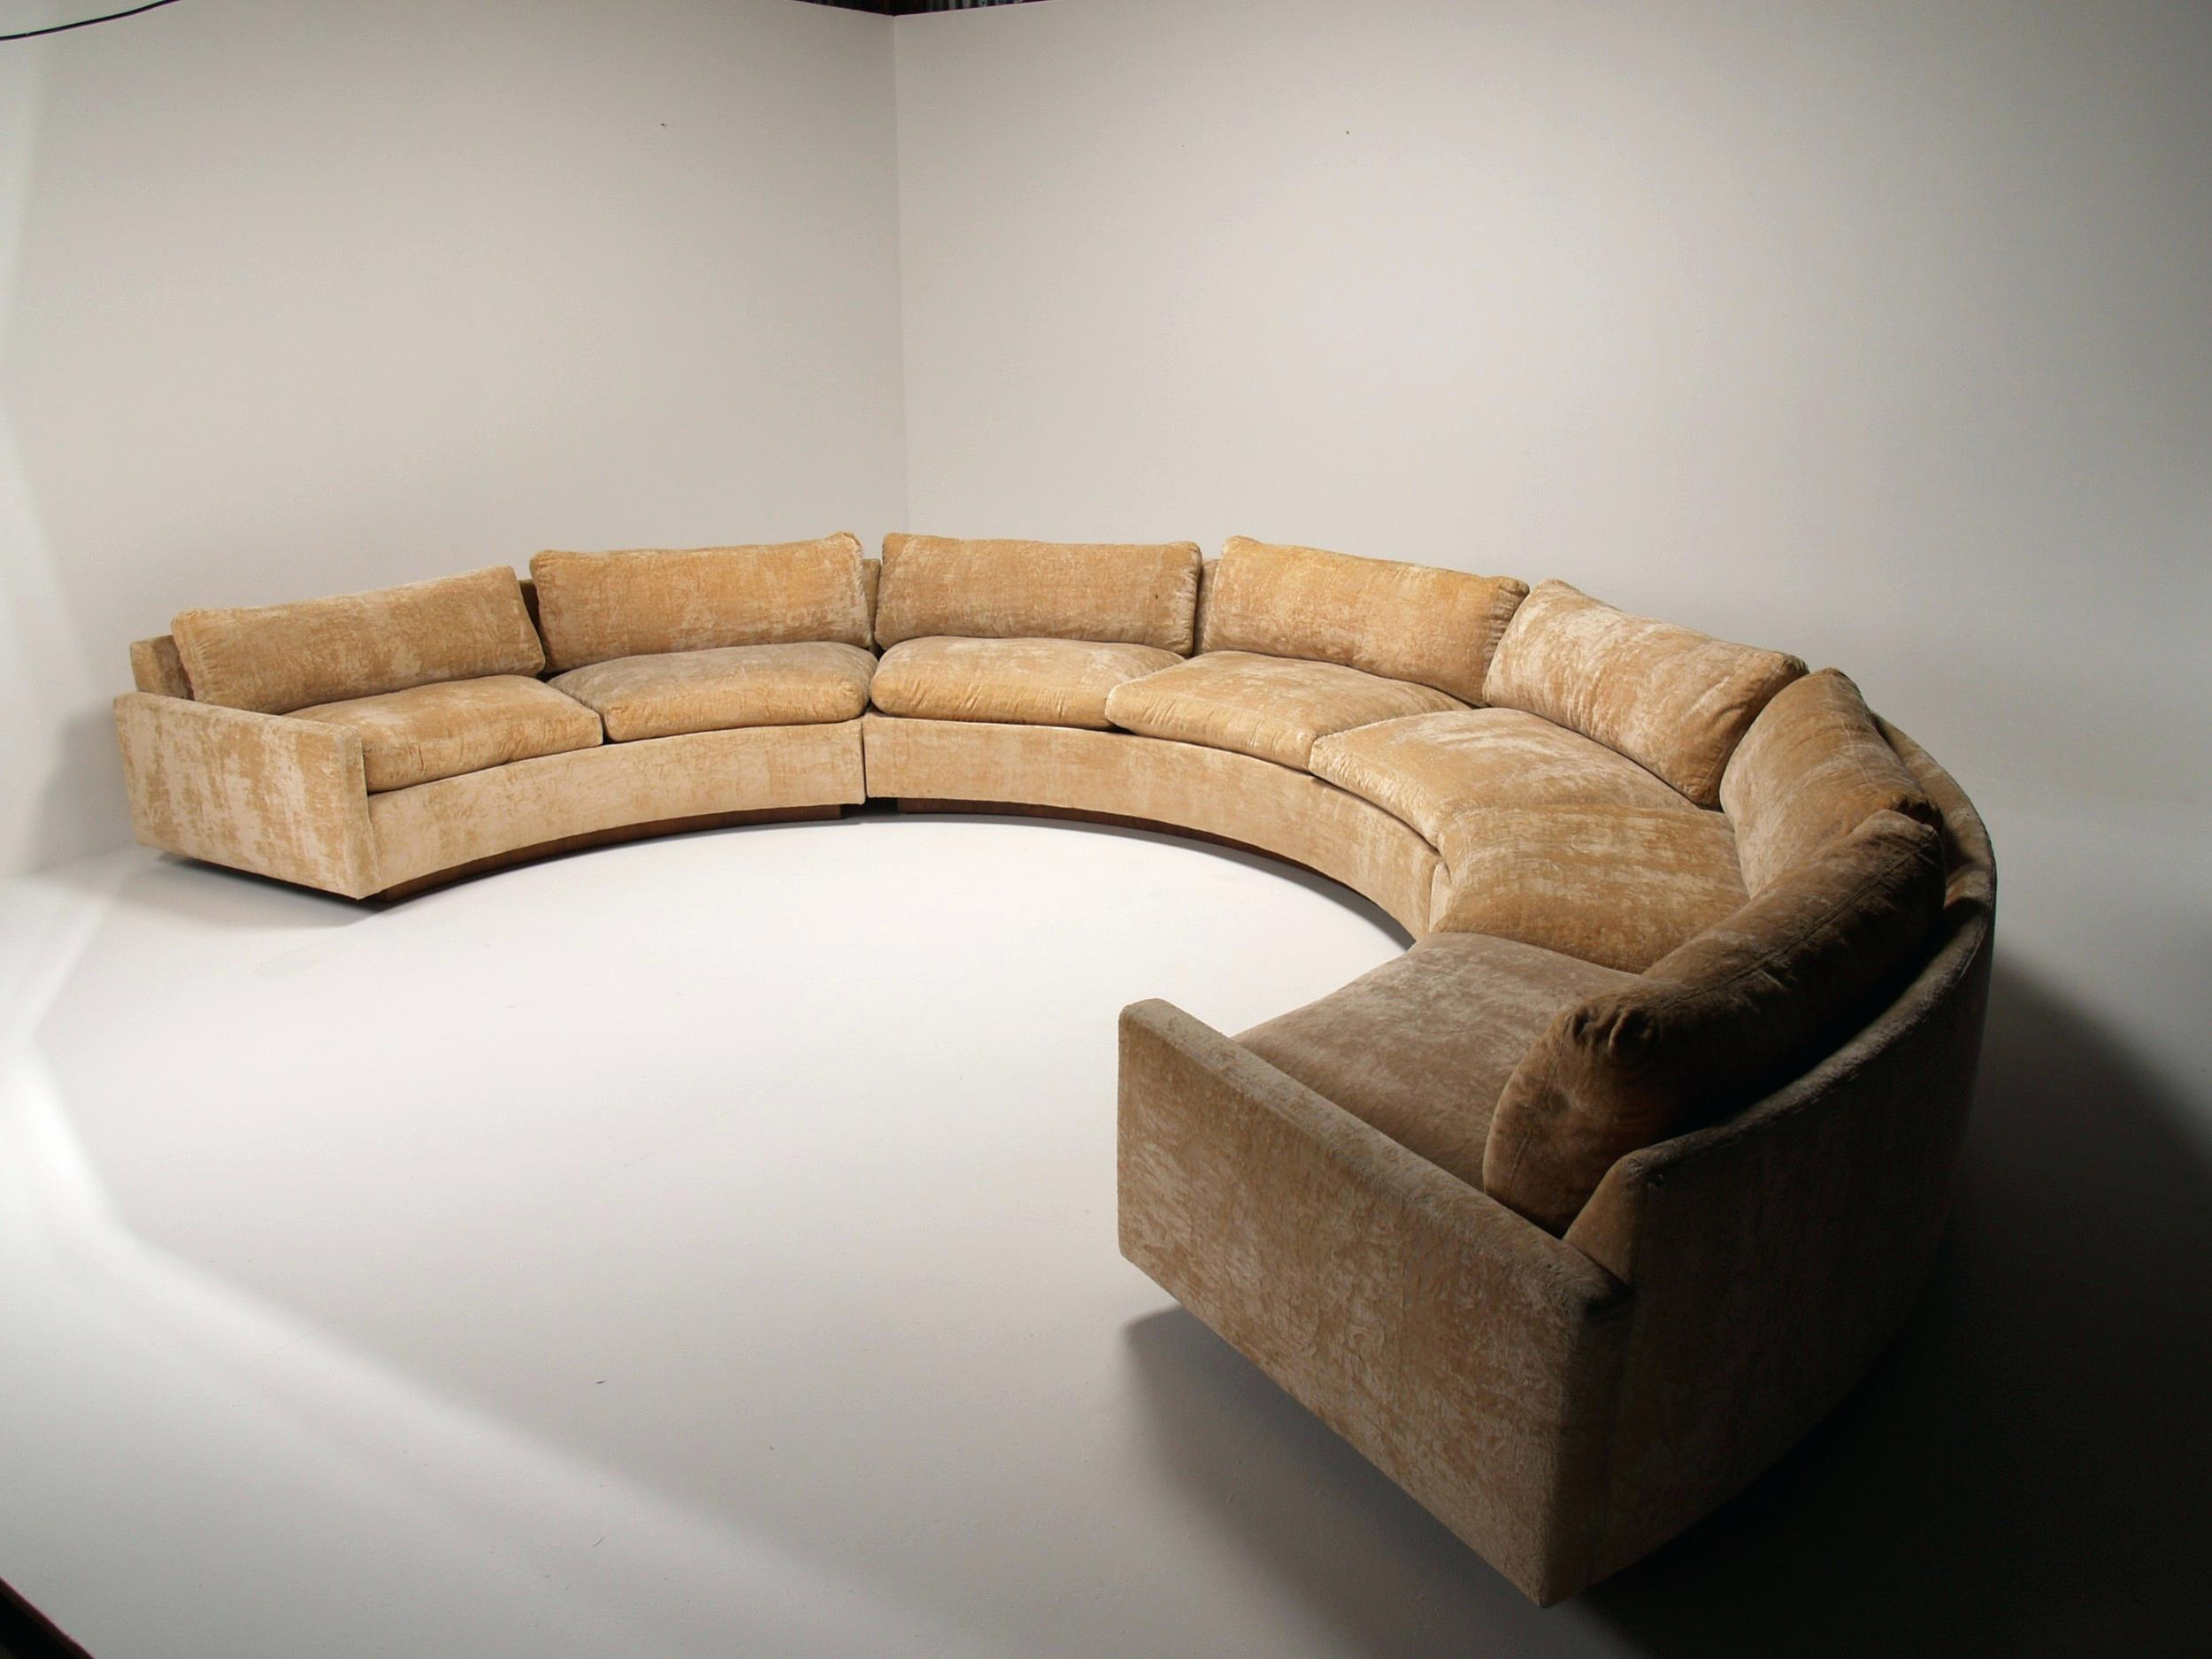 Sunbrella Outdoor Sectional Megalo Motion Cindy Crawford Home Intended For Individual Piece Sectional Sofas (View 19 of 20)